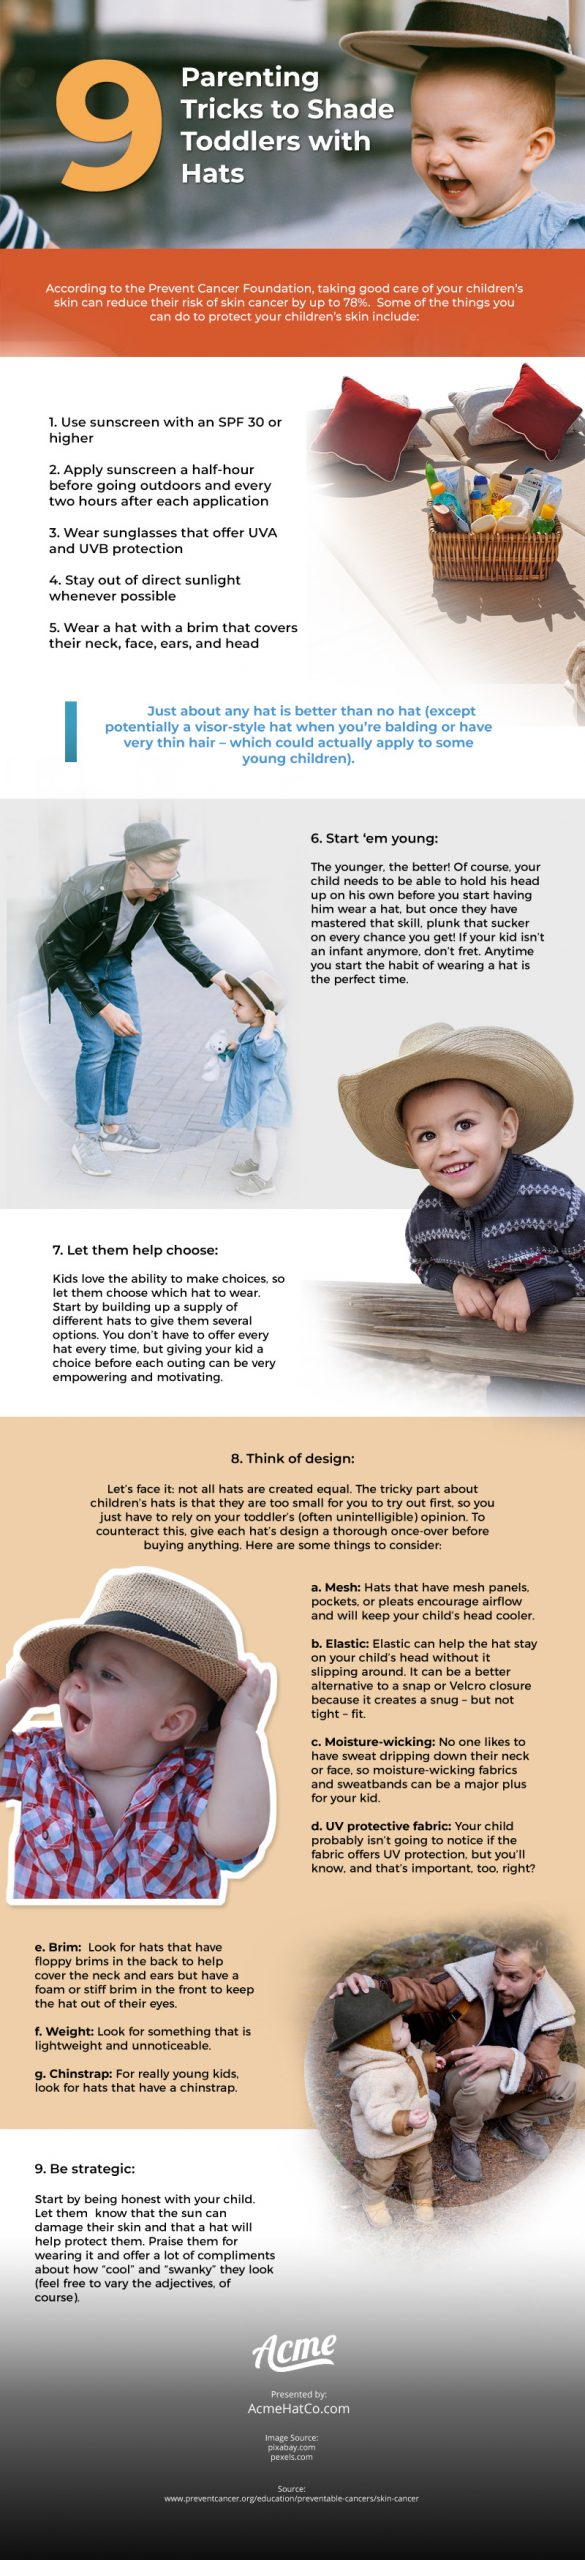 9 Parenting Tricks to Shade Toddlers with Hats